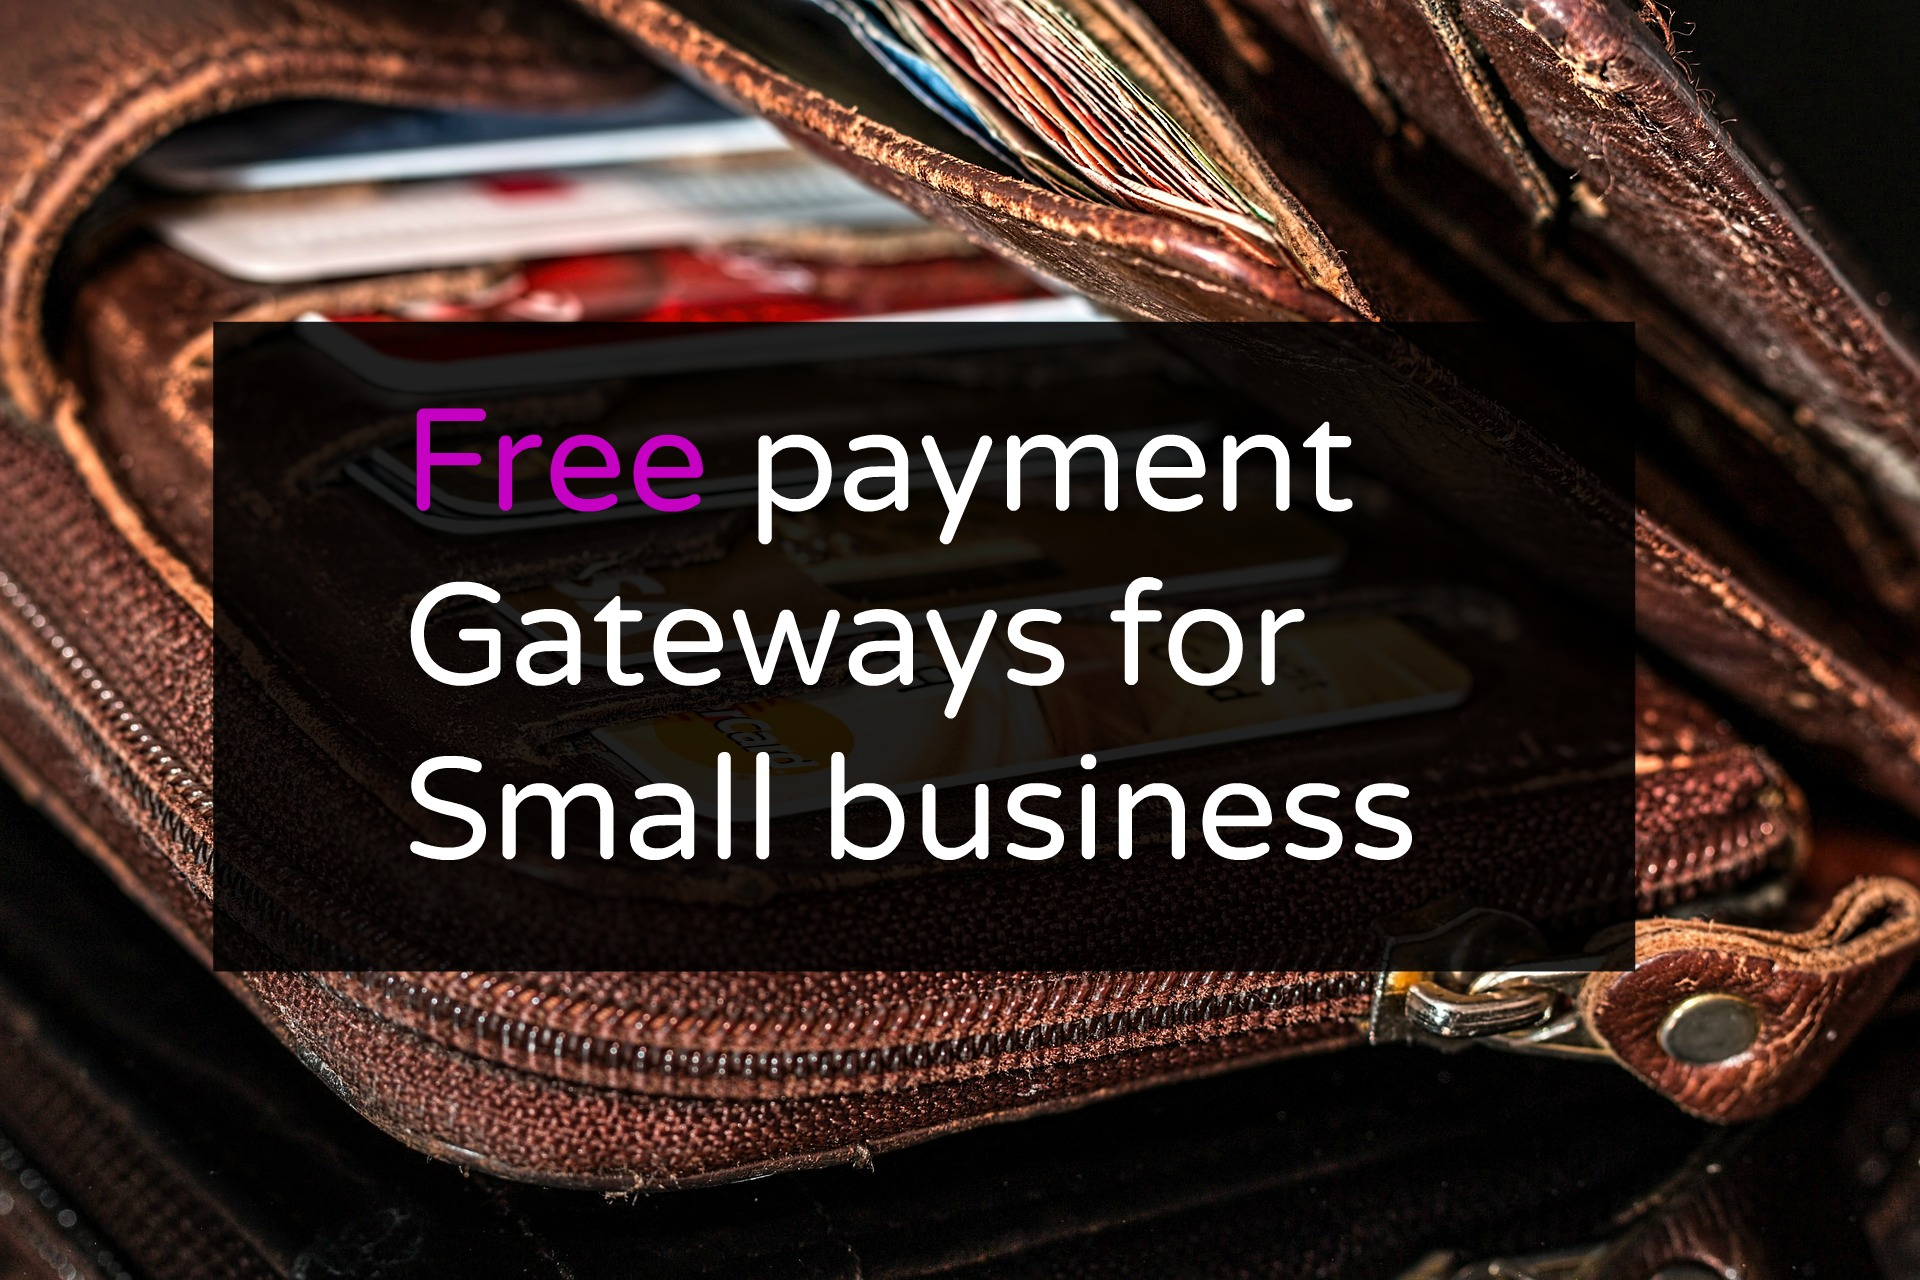 free payment gateways